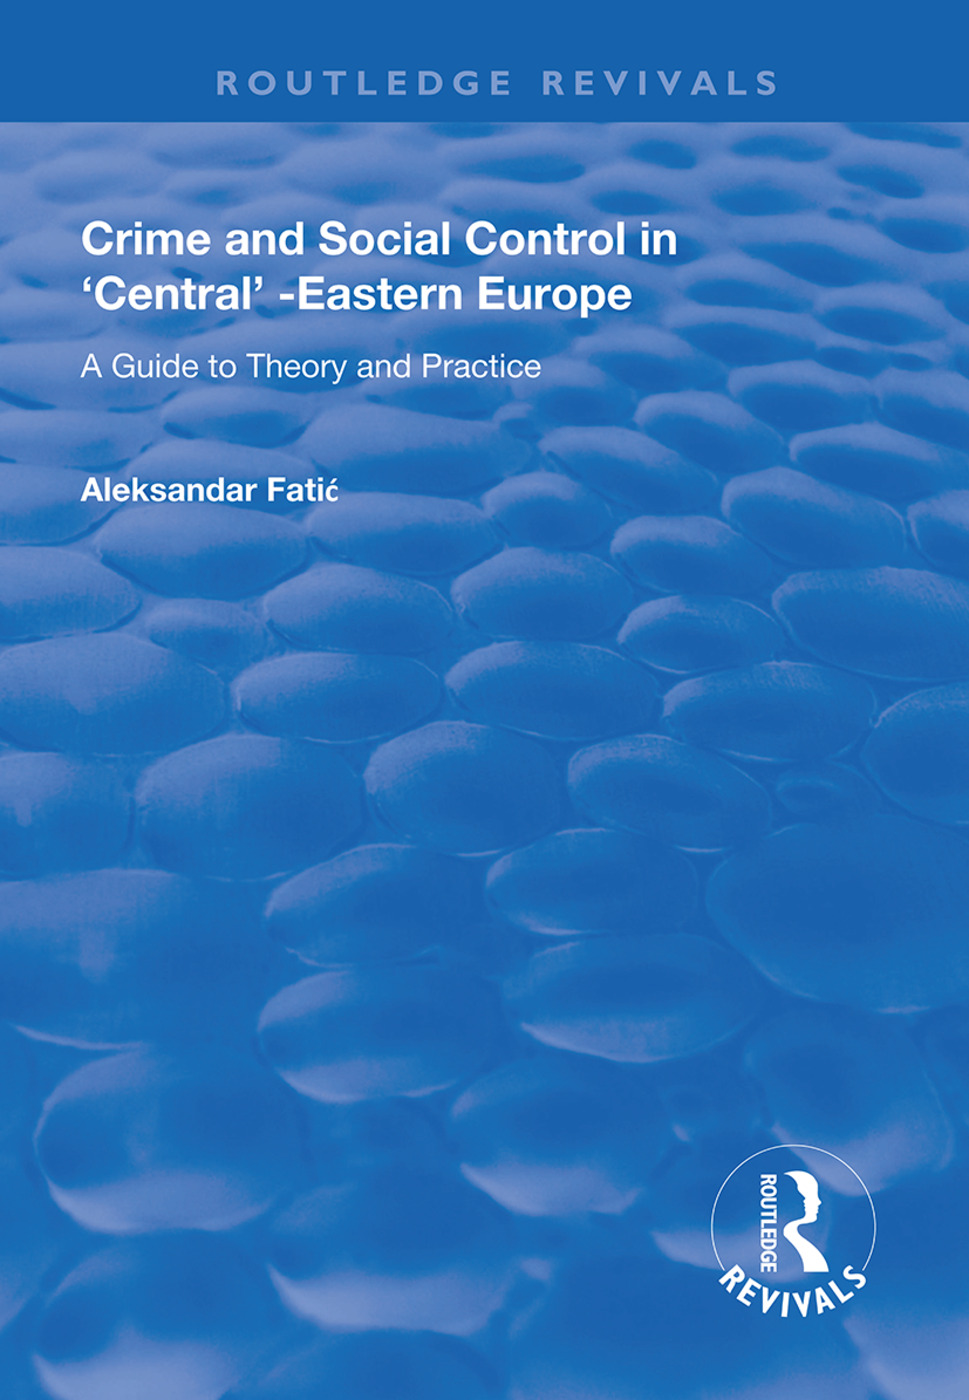 Crime and Social Control in Central-Eastern Europe